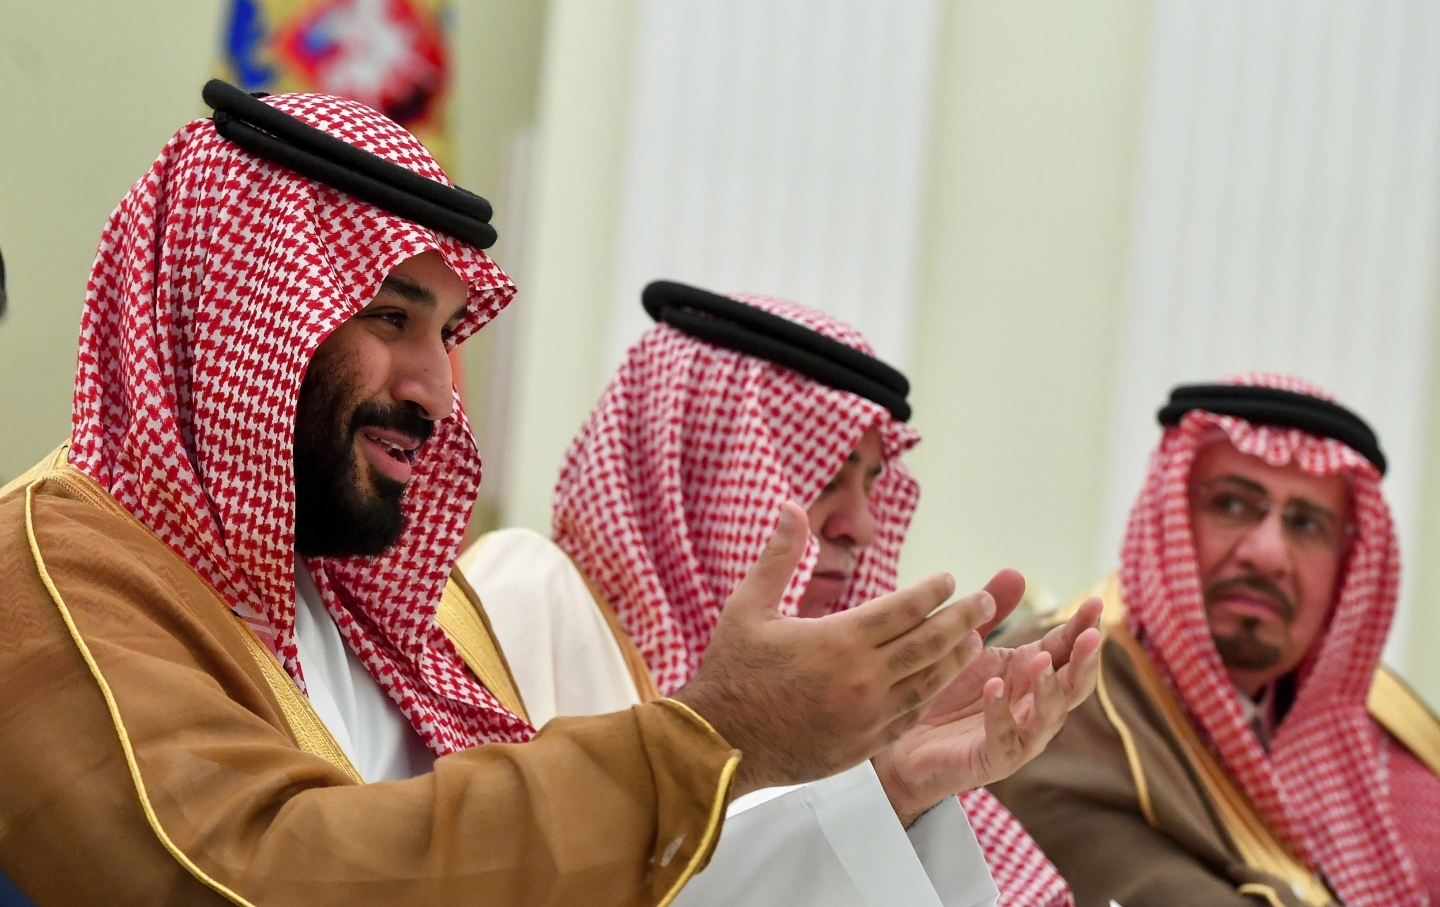 The Real Message Behind the Saudi Crown Prince's Diplomatic